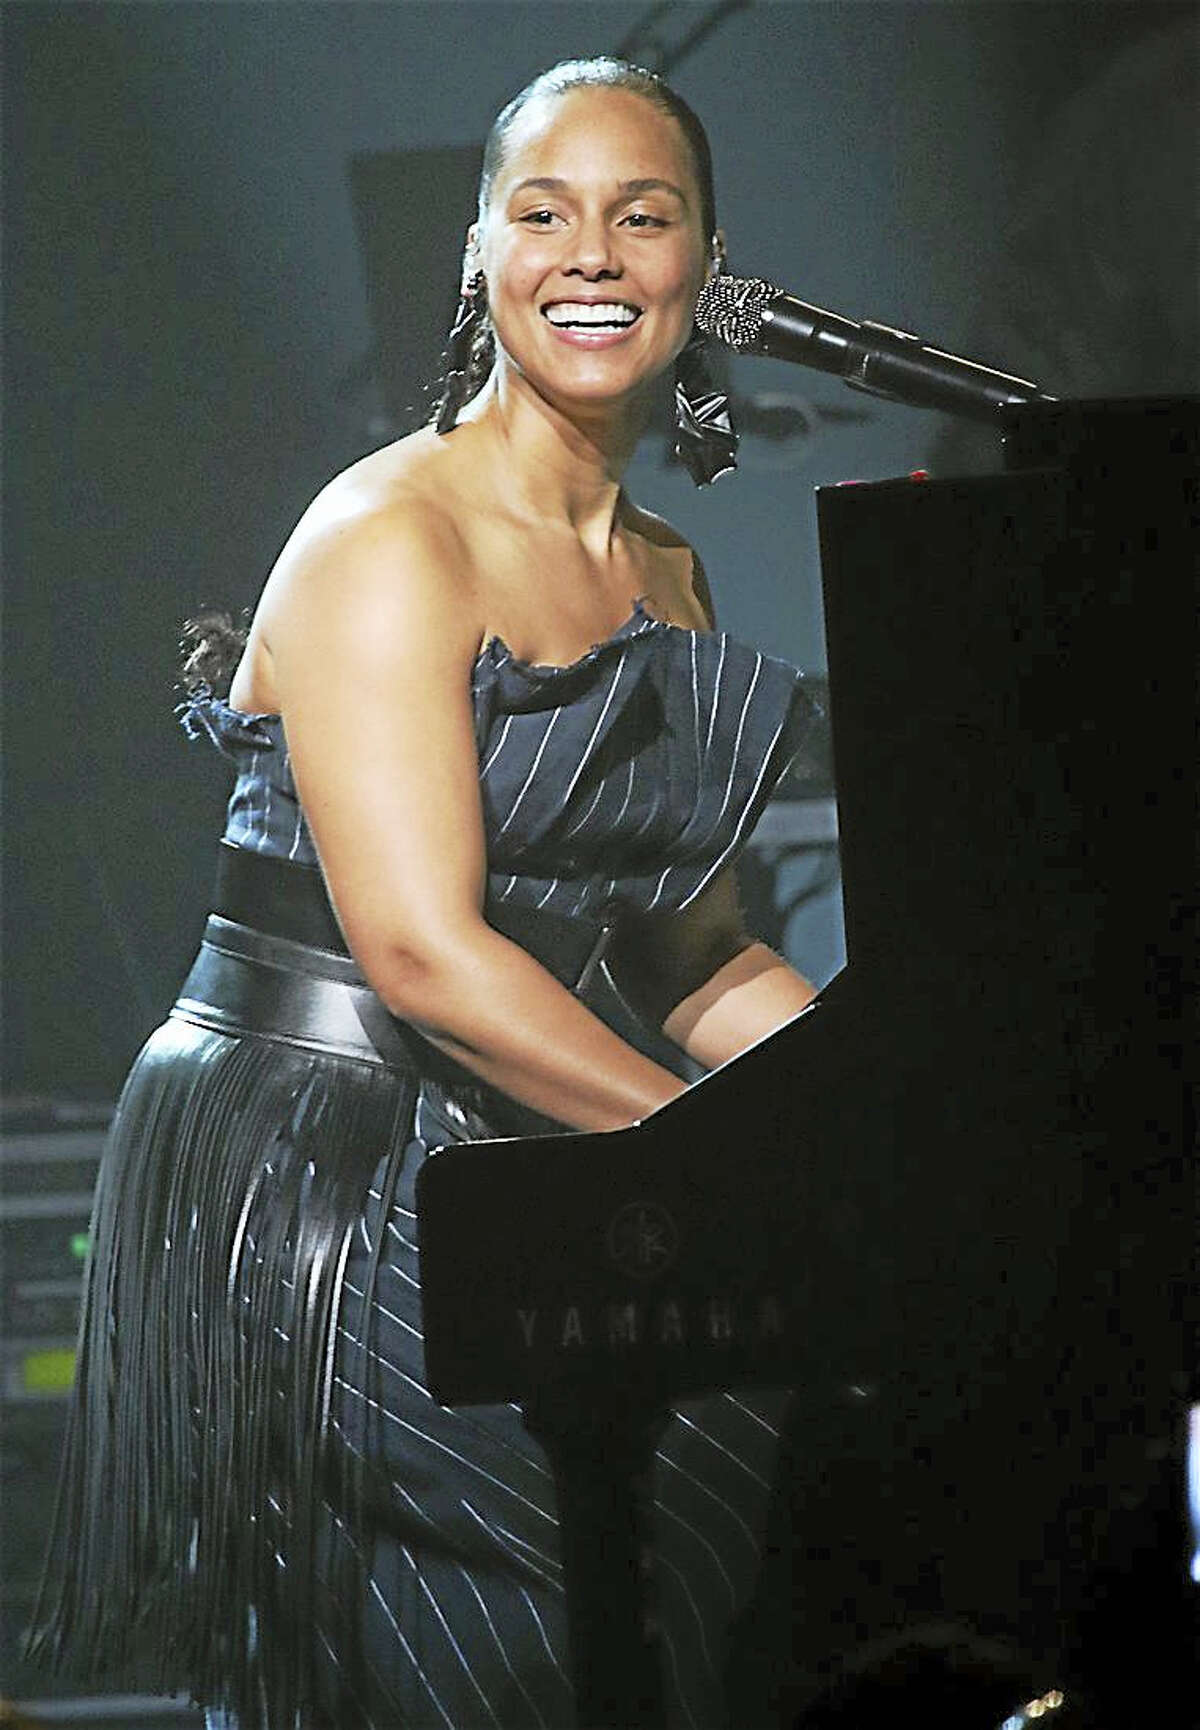 """Photo by John Atashian Singer, songwriter, pianist and actress, Alicia Keys, is shown smiling out to the packed house of fans during her concert appearance at the Foxwoods Resort Casino on Sunday night March 12, 2017. Alicia is currently on touring the US in support of her brand album """"Here"""". To learn more you can visit www.here.aliciakeys.com"""